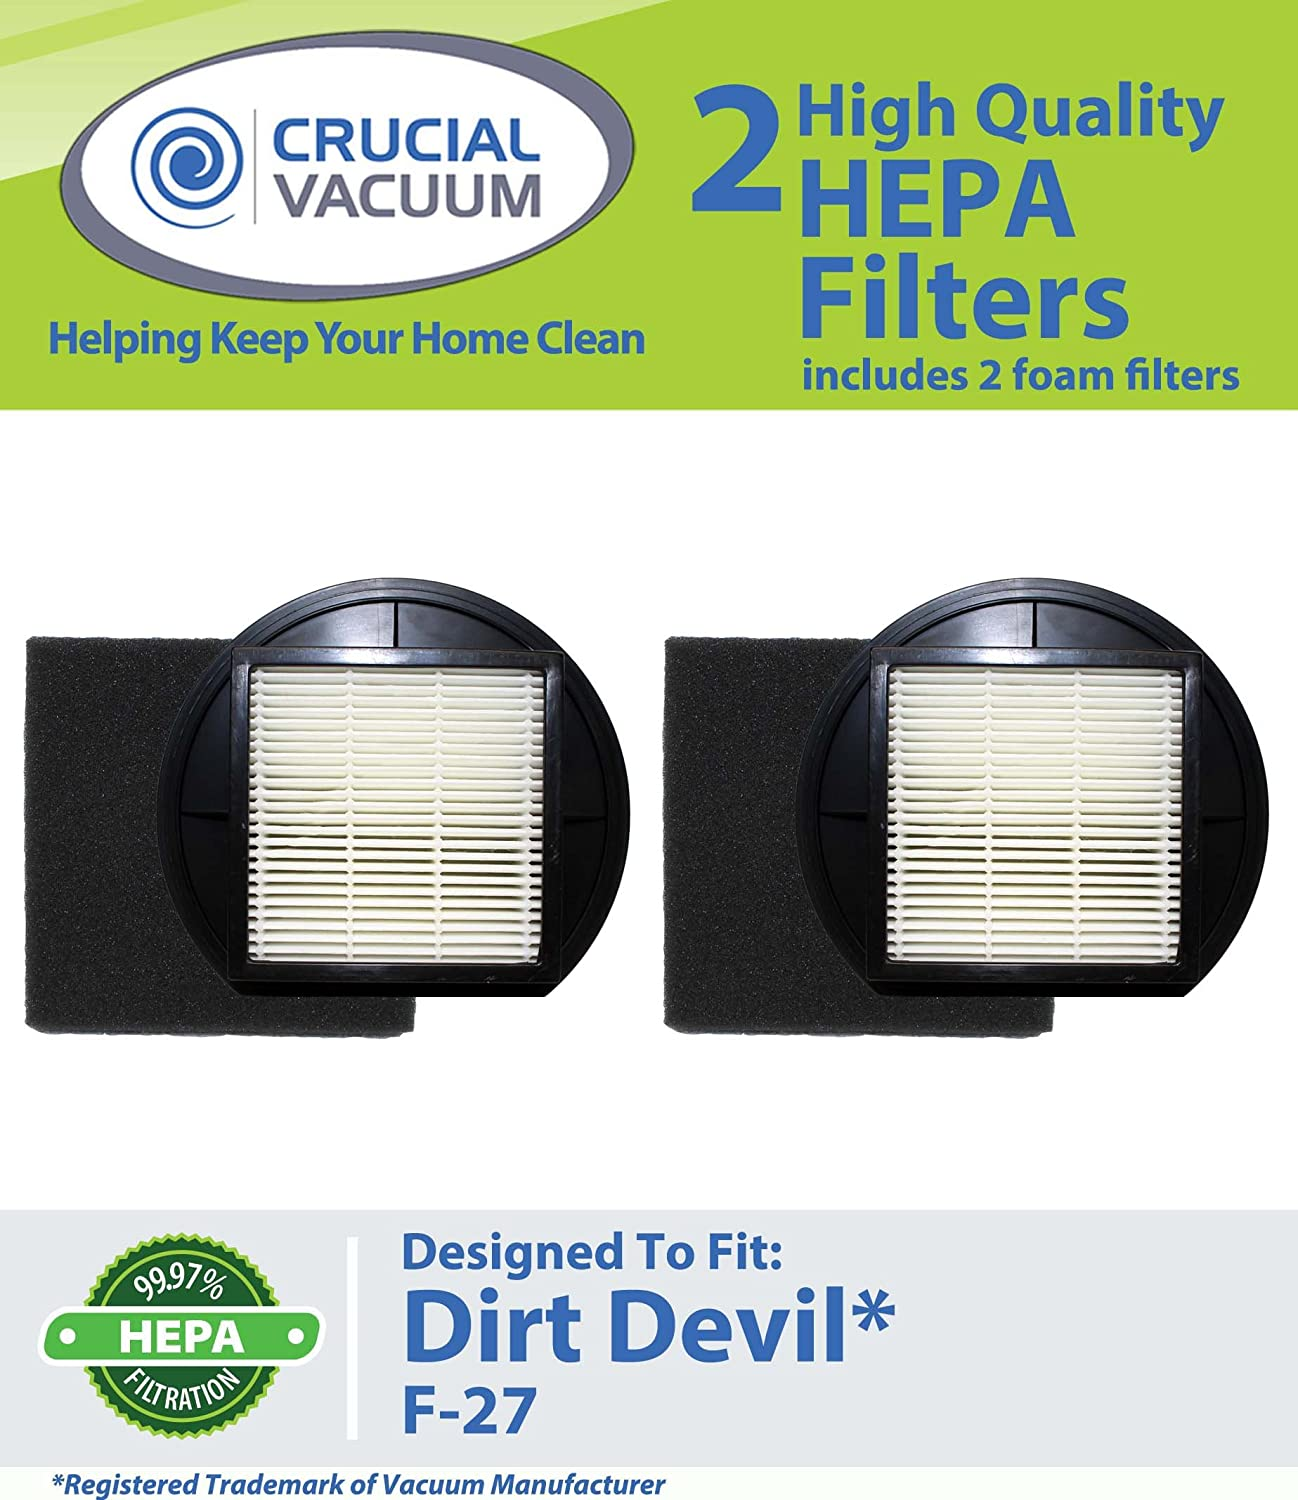 Crucial Vacuum 2 Dirt Devil F-27 Replacement HEPA Filters with Foam Filter; Replaces Dirt Devil Vacuum Part # F27 1LY2108000 / 1-LY2108-000 at Sears.com